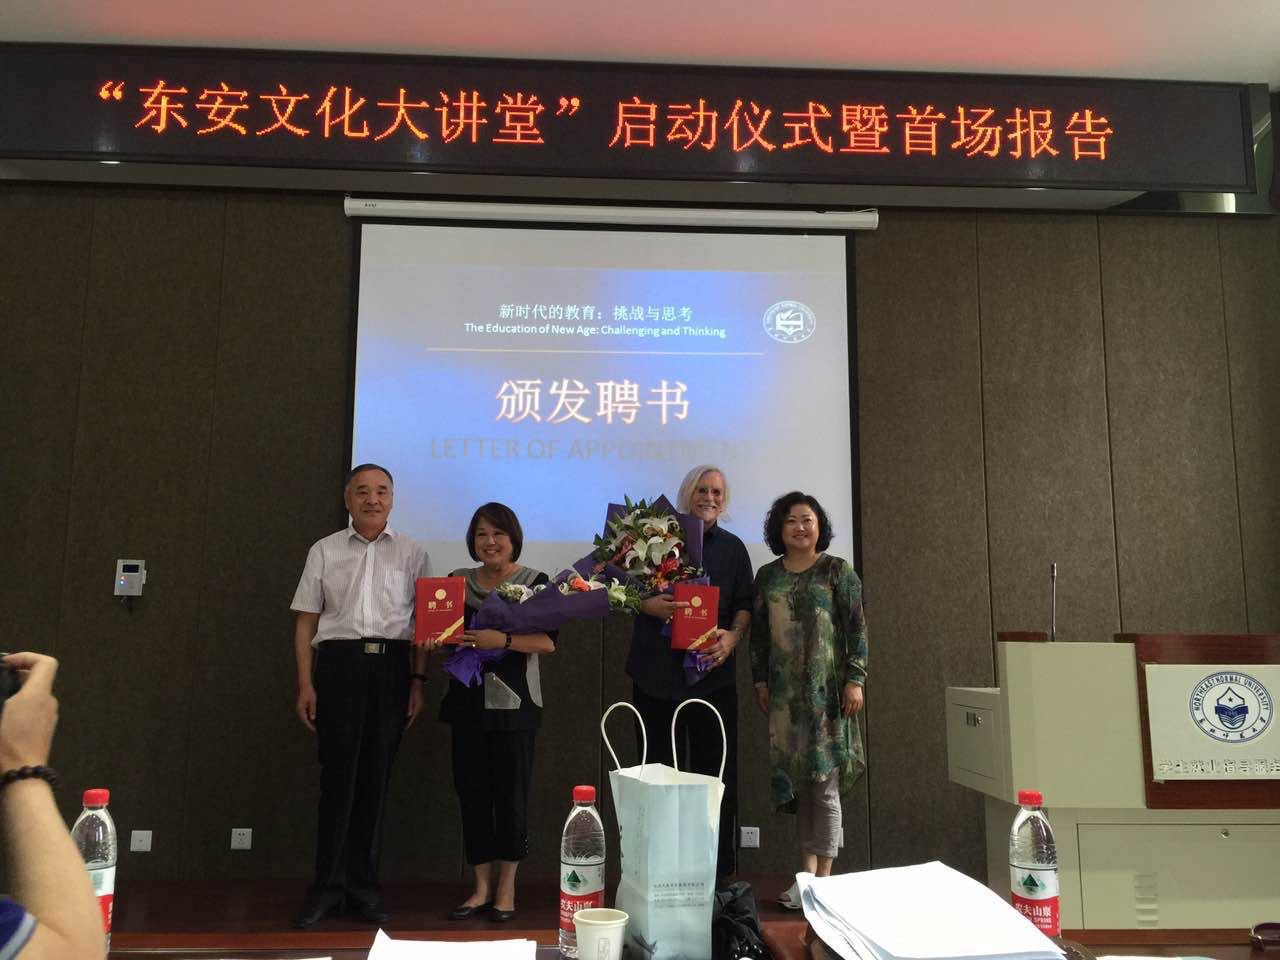 Peter and Suzi Accept Their Joint Appointment in Changchun